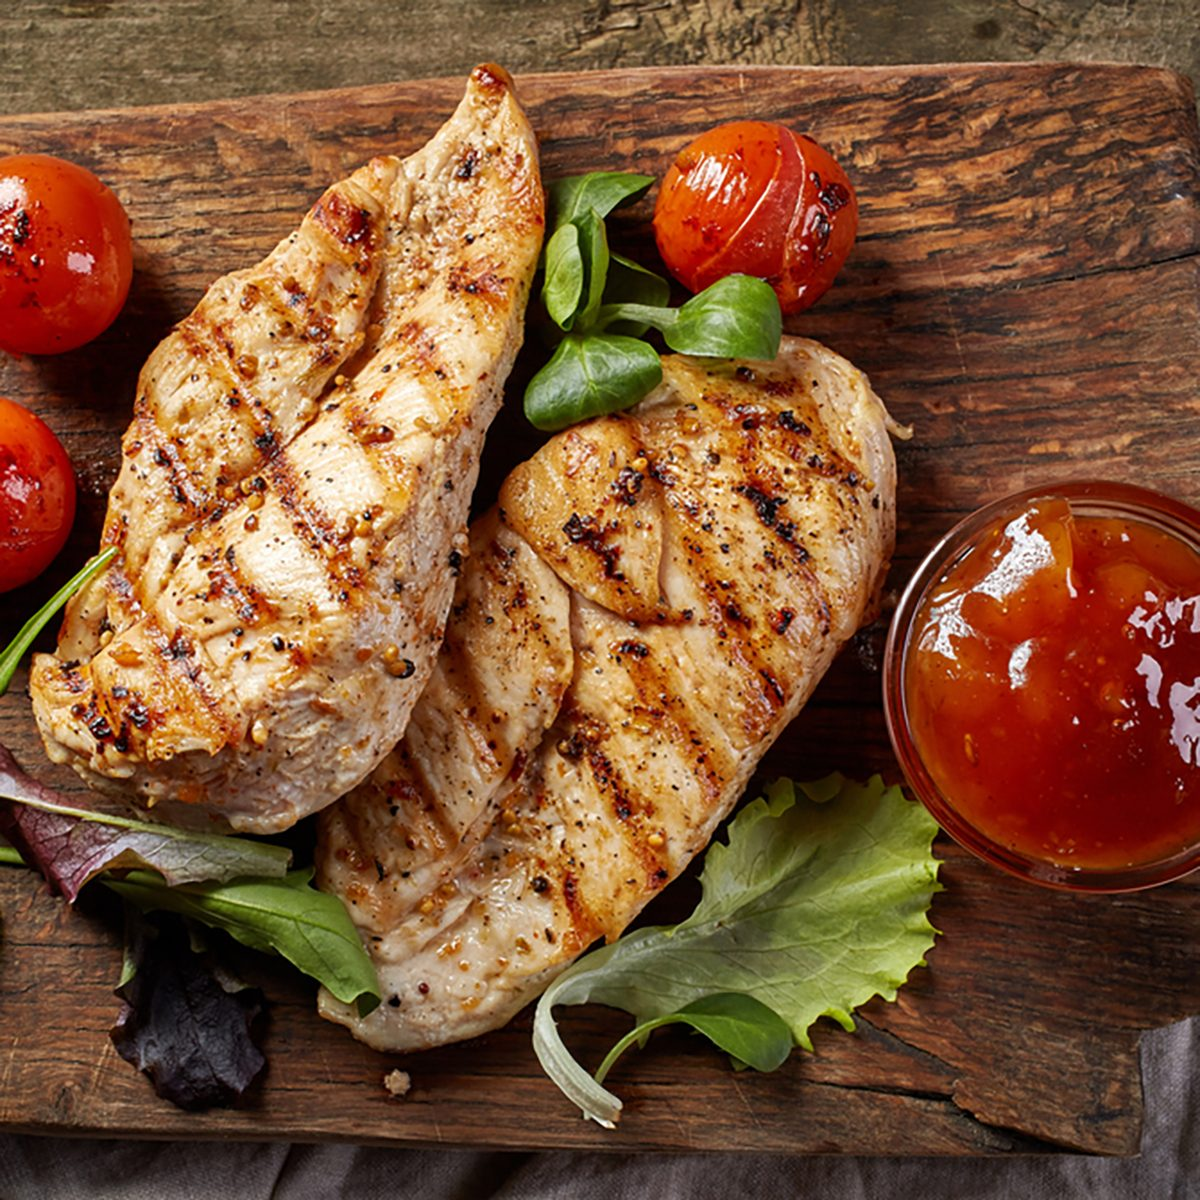 grilled chicken fillets on wooden cutting board